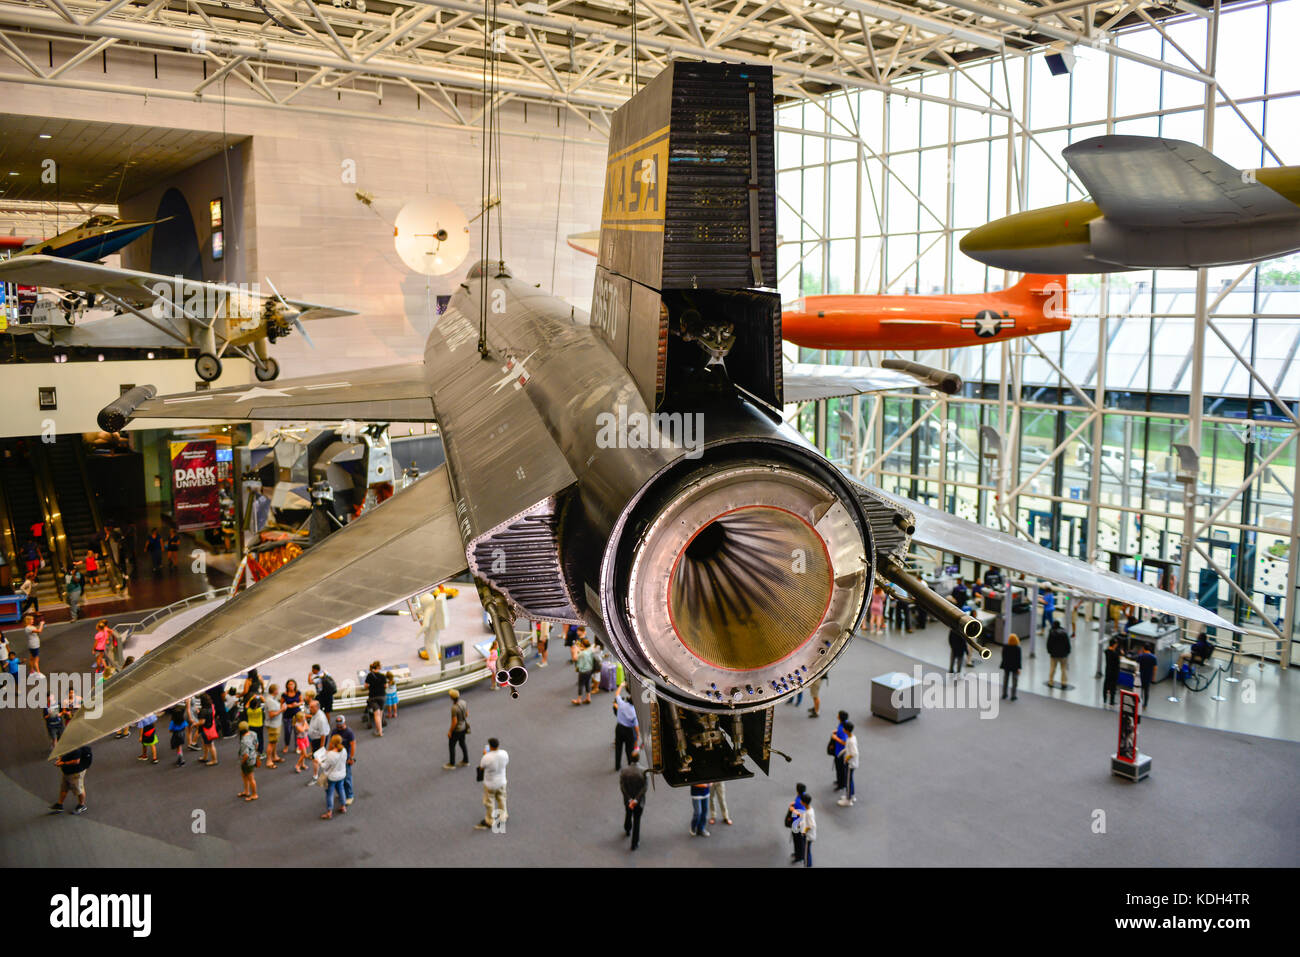 View of the propulsion end of an experimental aircraft, an X-Craft, along with a Bell XI at the National Air & - Stock Image